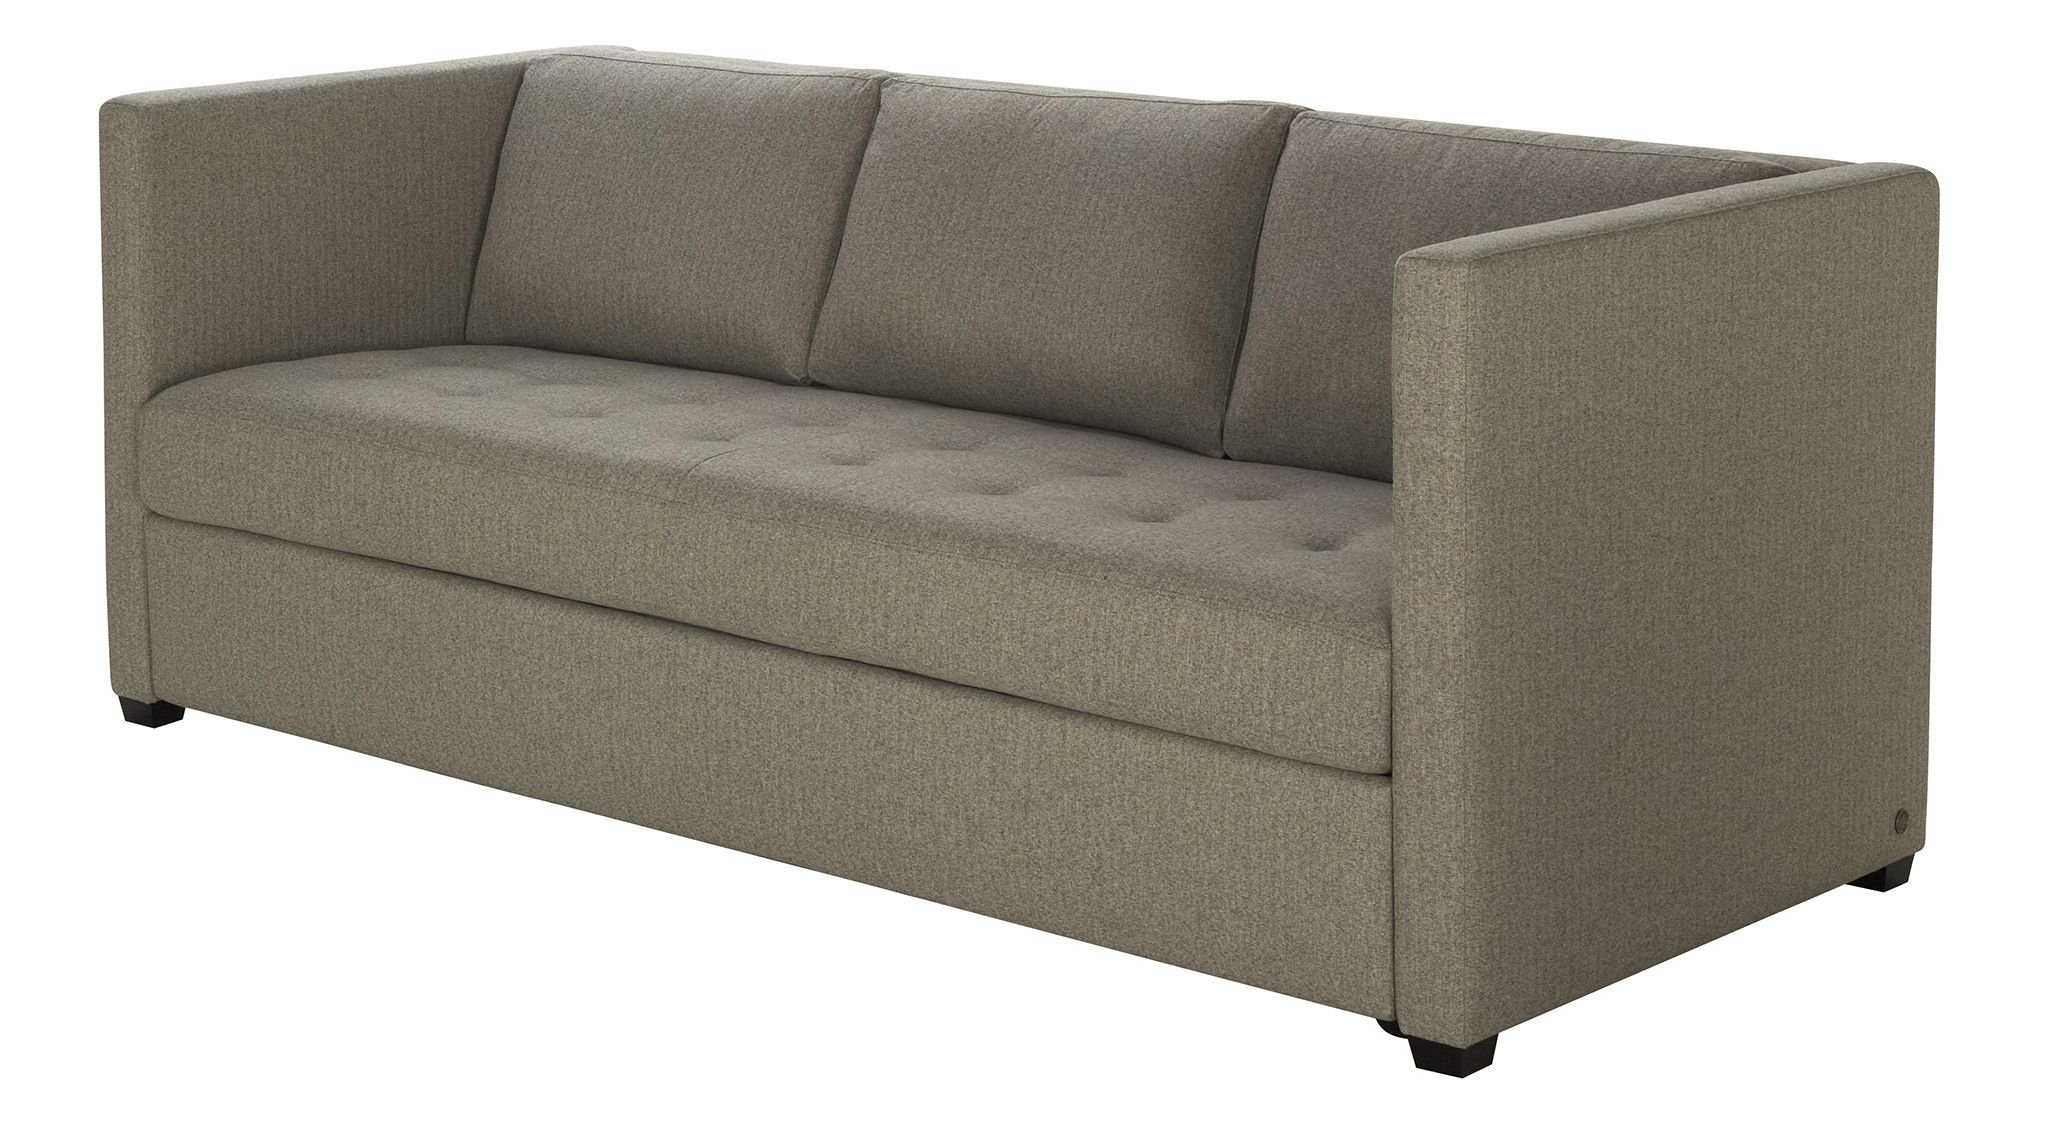 Cool Lovely Tempurpedic Sofa Bed 34 For Your Home Design Ideas With